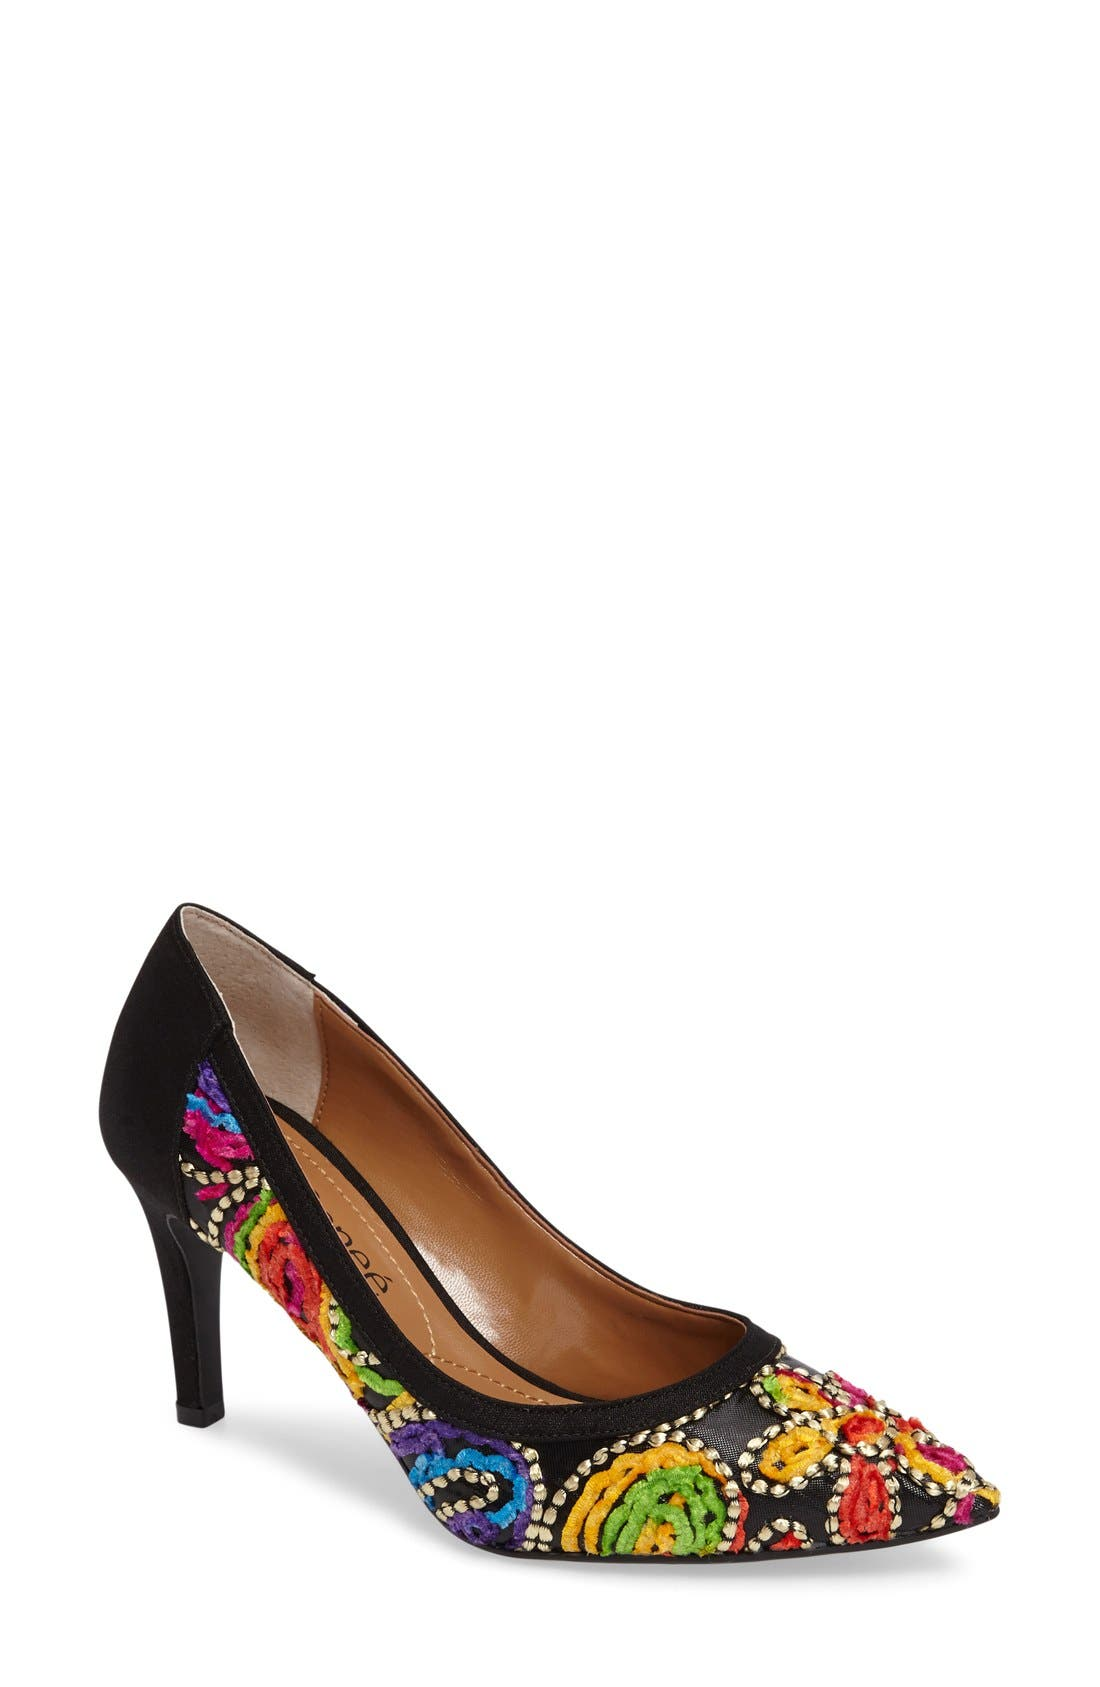 Camall Embroidered Pointy Toe Pump,                             Main thumbnail 1, color,                             002